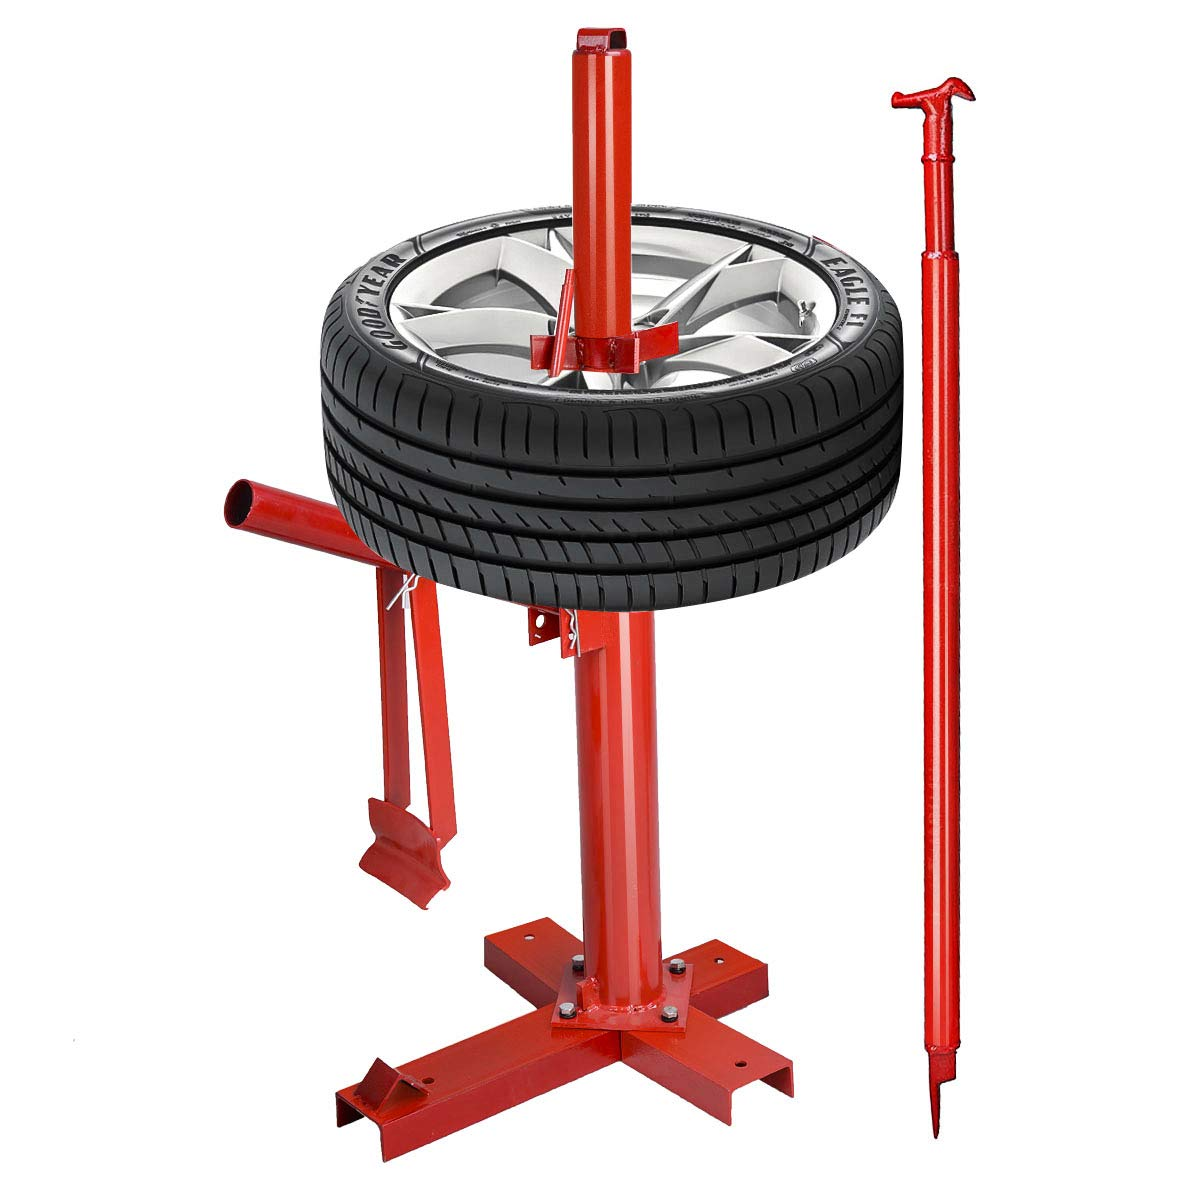 Goplus Manual Portable Hand Tire Changer Bead Breaker Tool Mounting Home Shop Auto by Goplus (Image #7)